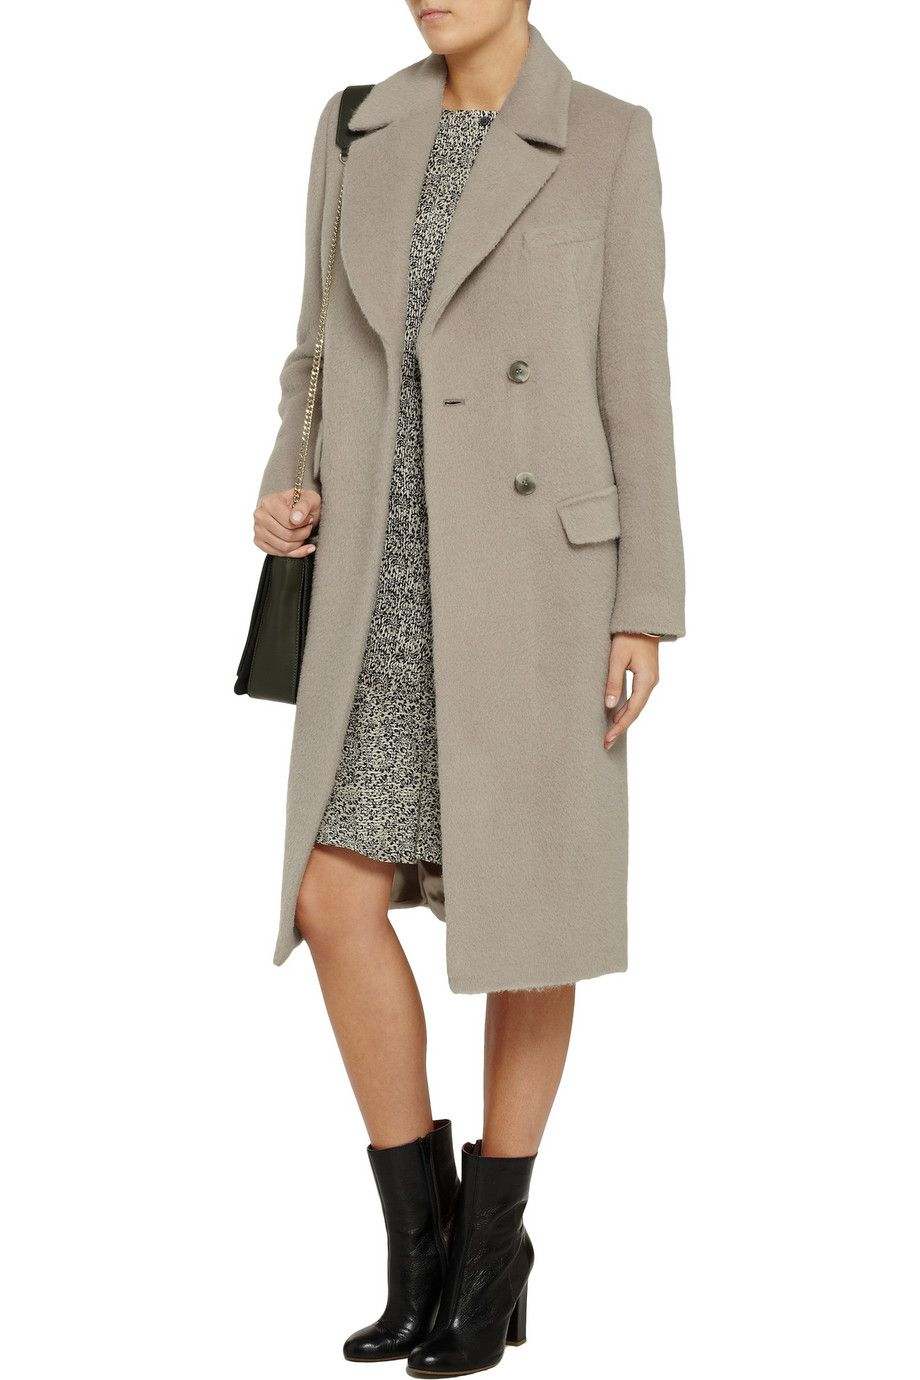 Iris & InkAimee brushed wool coat Discount Iris | Great ...